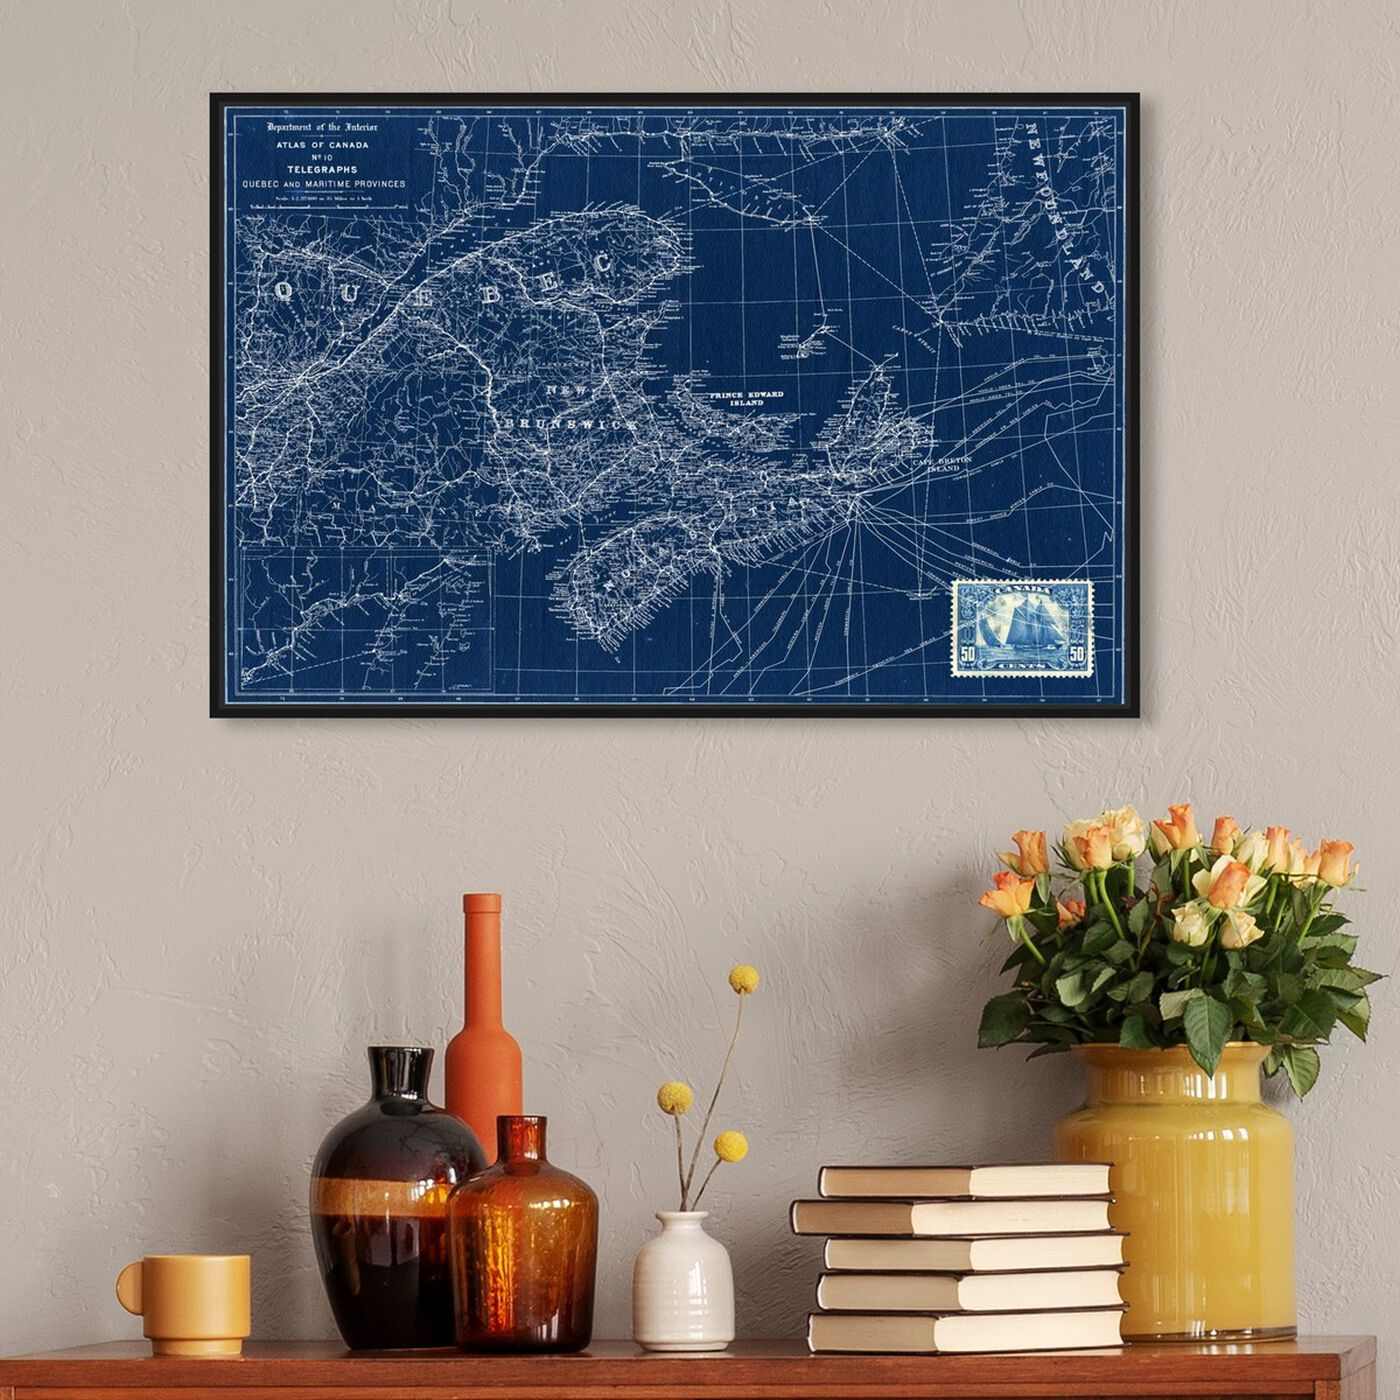 Hanging view of Quebec Maritime Provinces Map 1906 featuring cities and skylines and north american cities art.